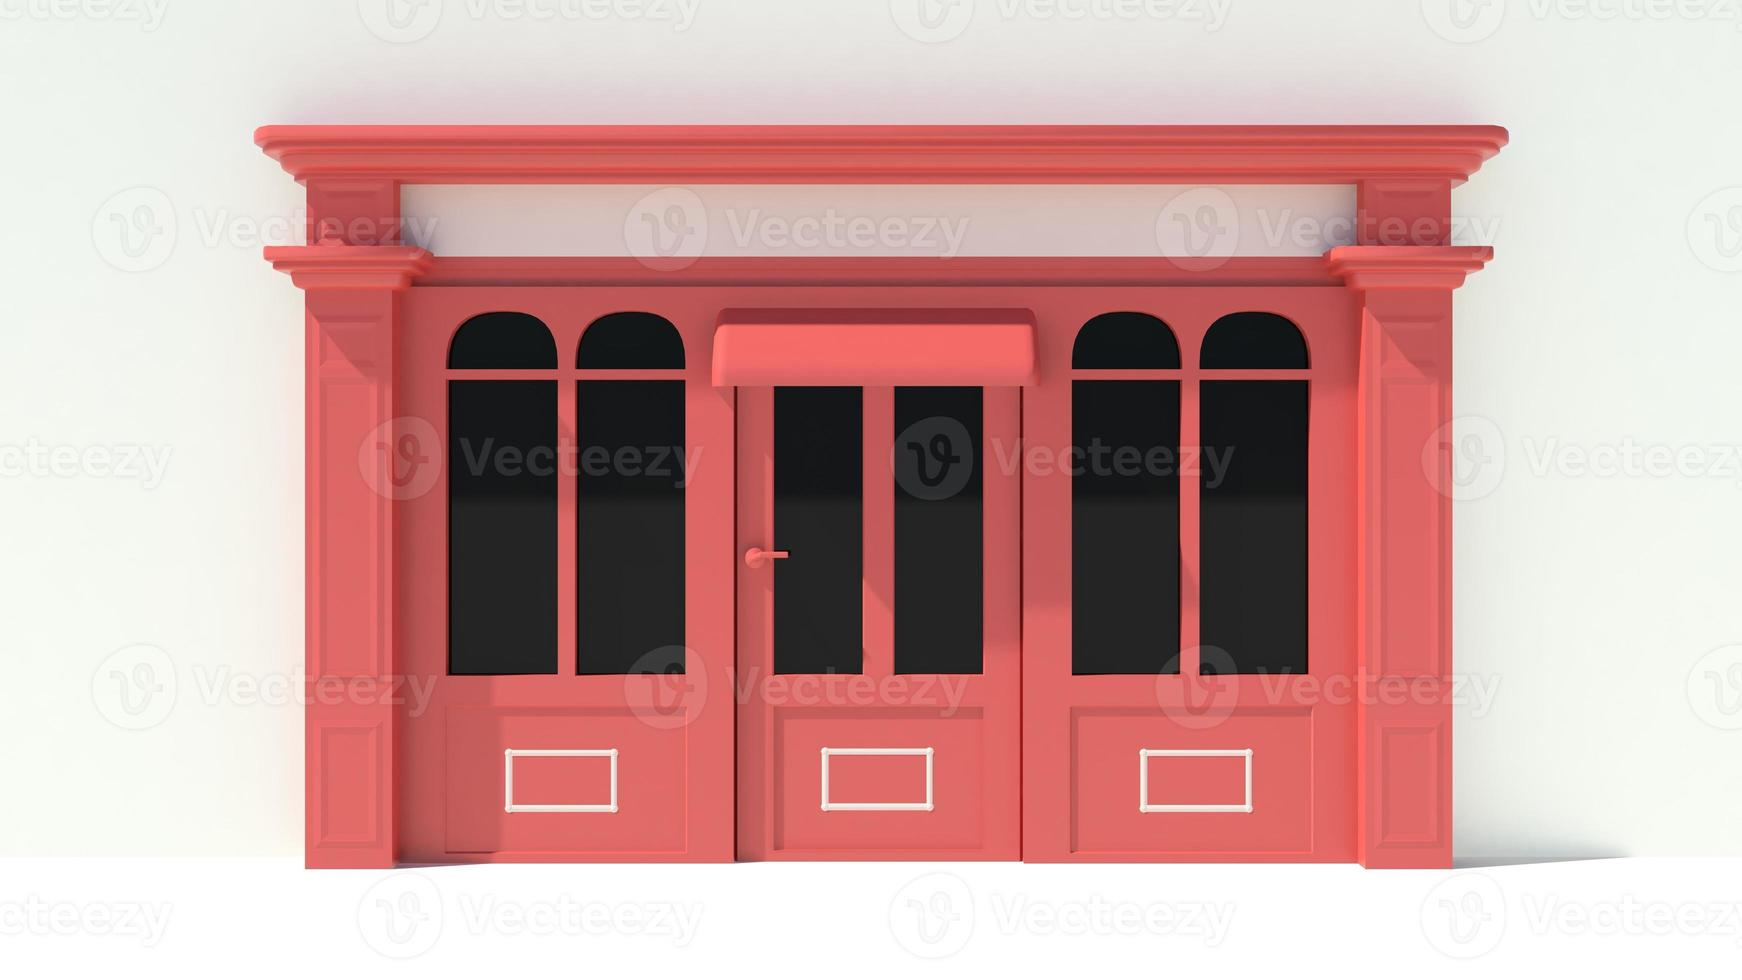 Sunny Shopfront with large windows White and red store facade photo